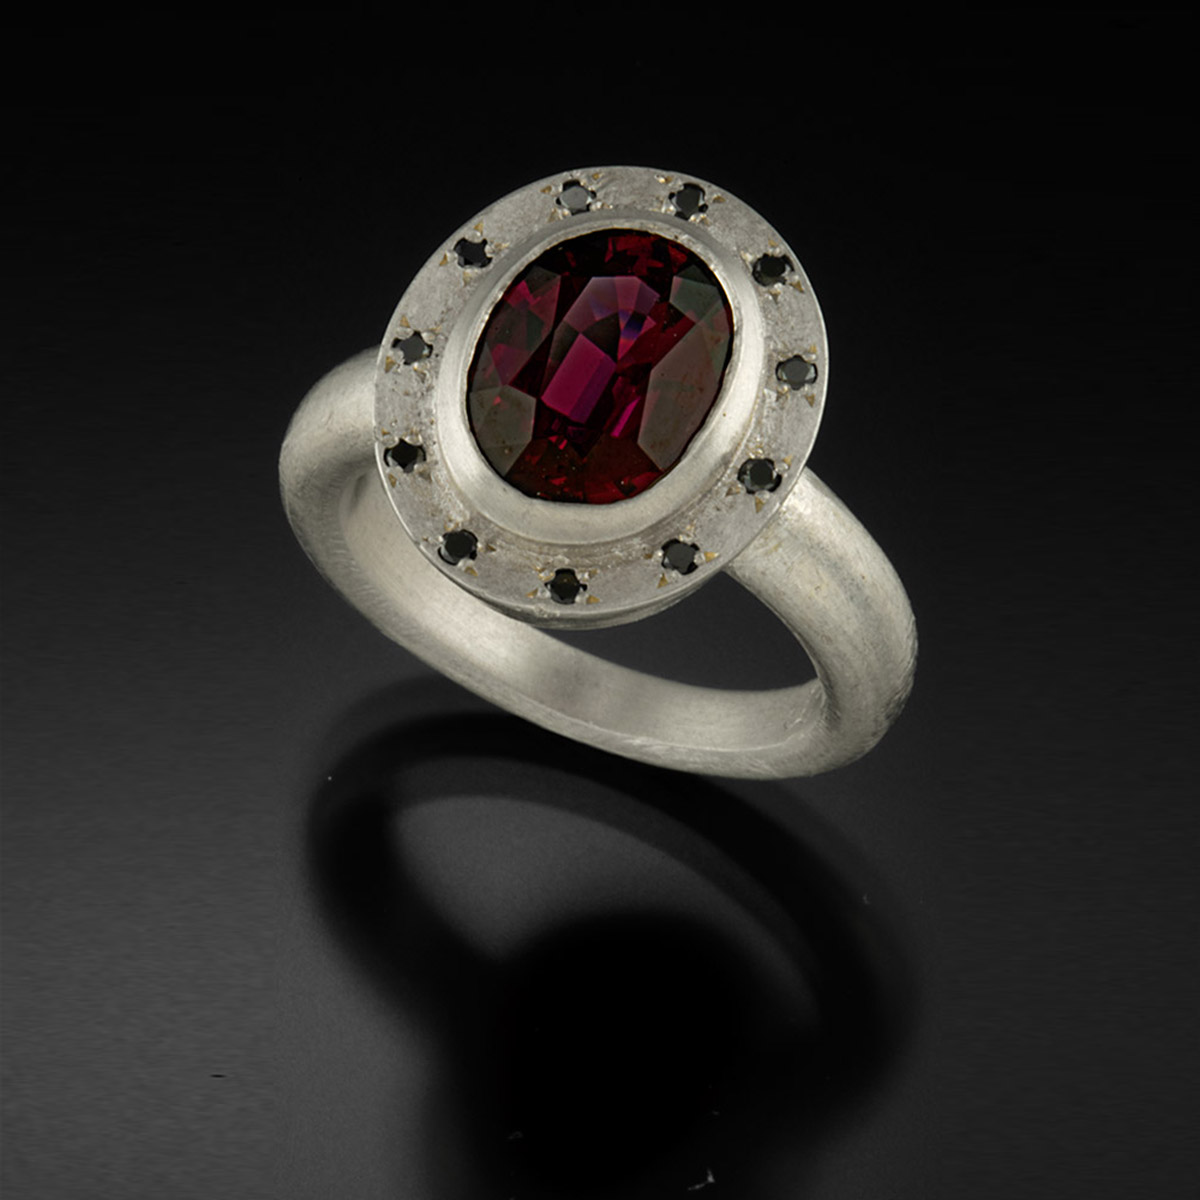 Brushed sterling silver ring with Rhodolite Garnet